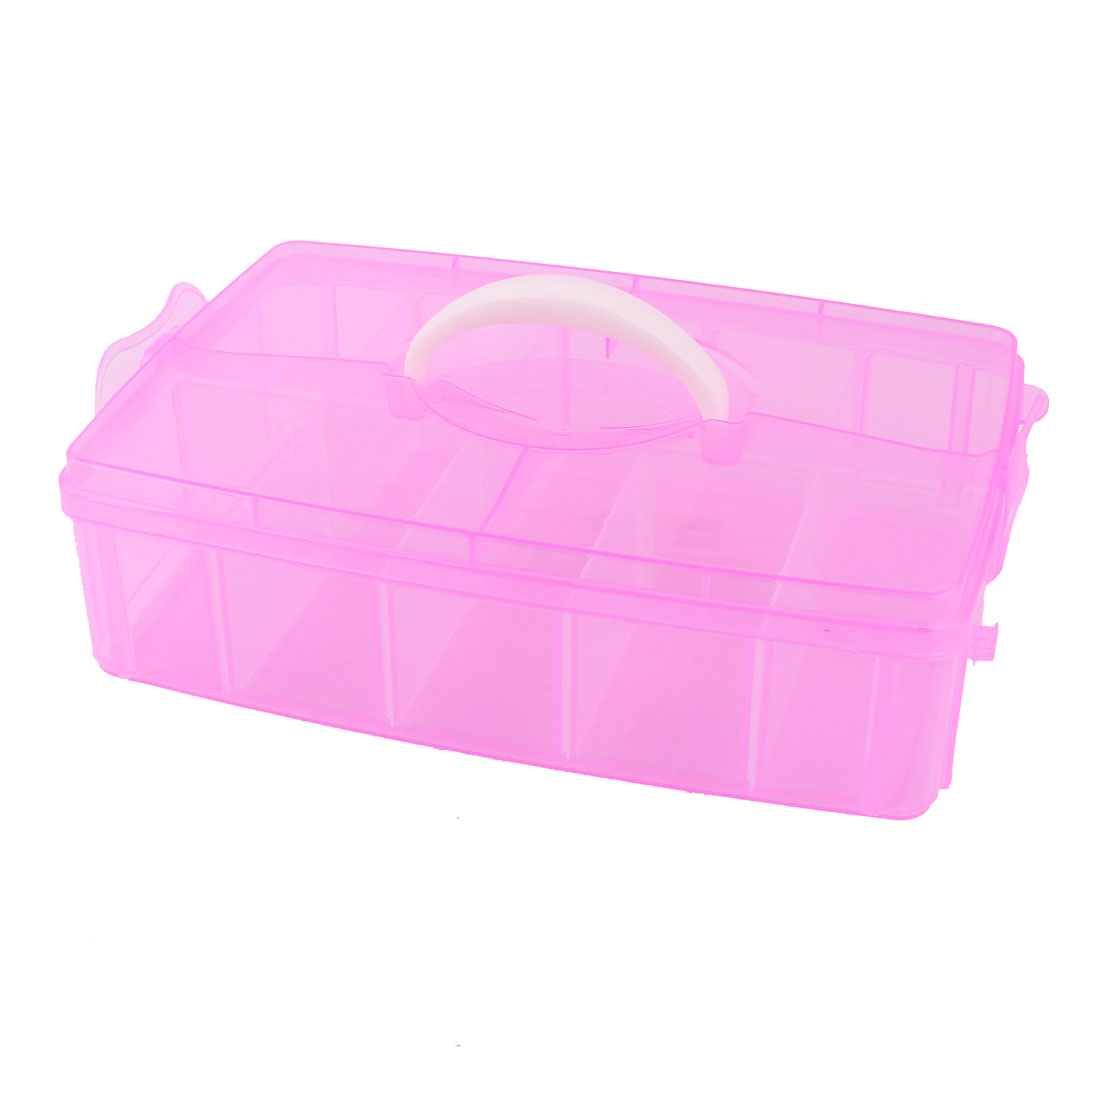 Detachable 10 Components Earrings Jewelry Organizer Storage Box Holder Fuchsia